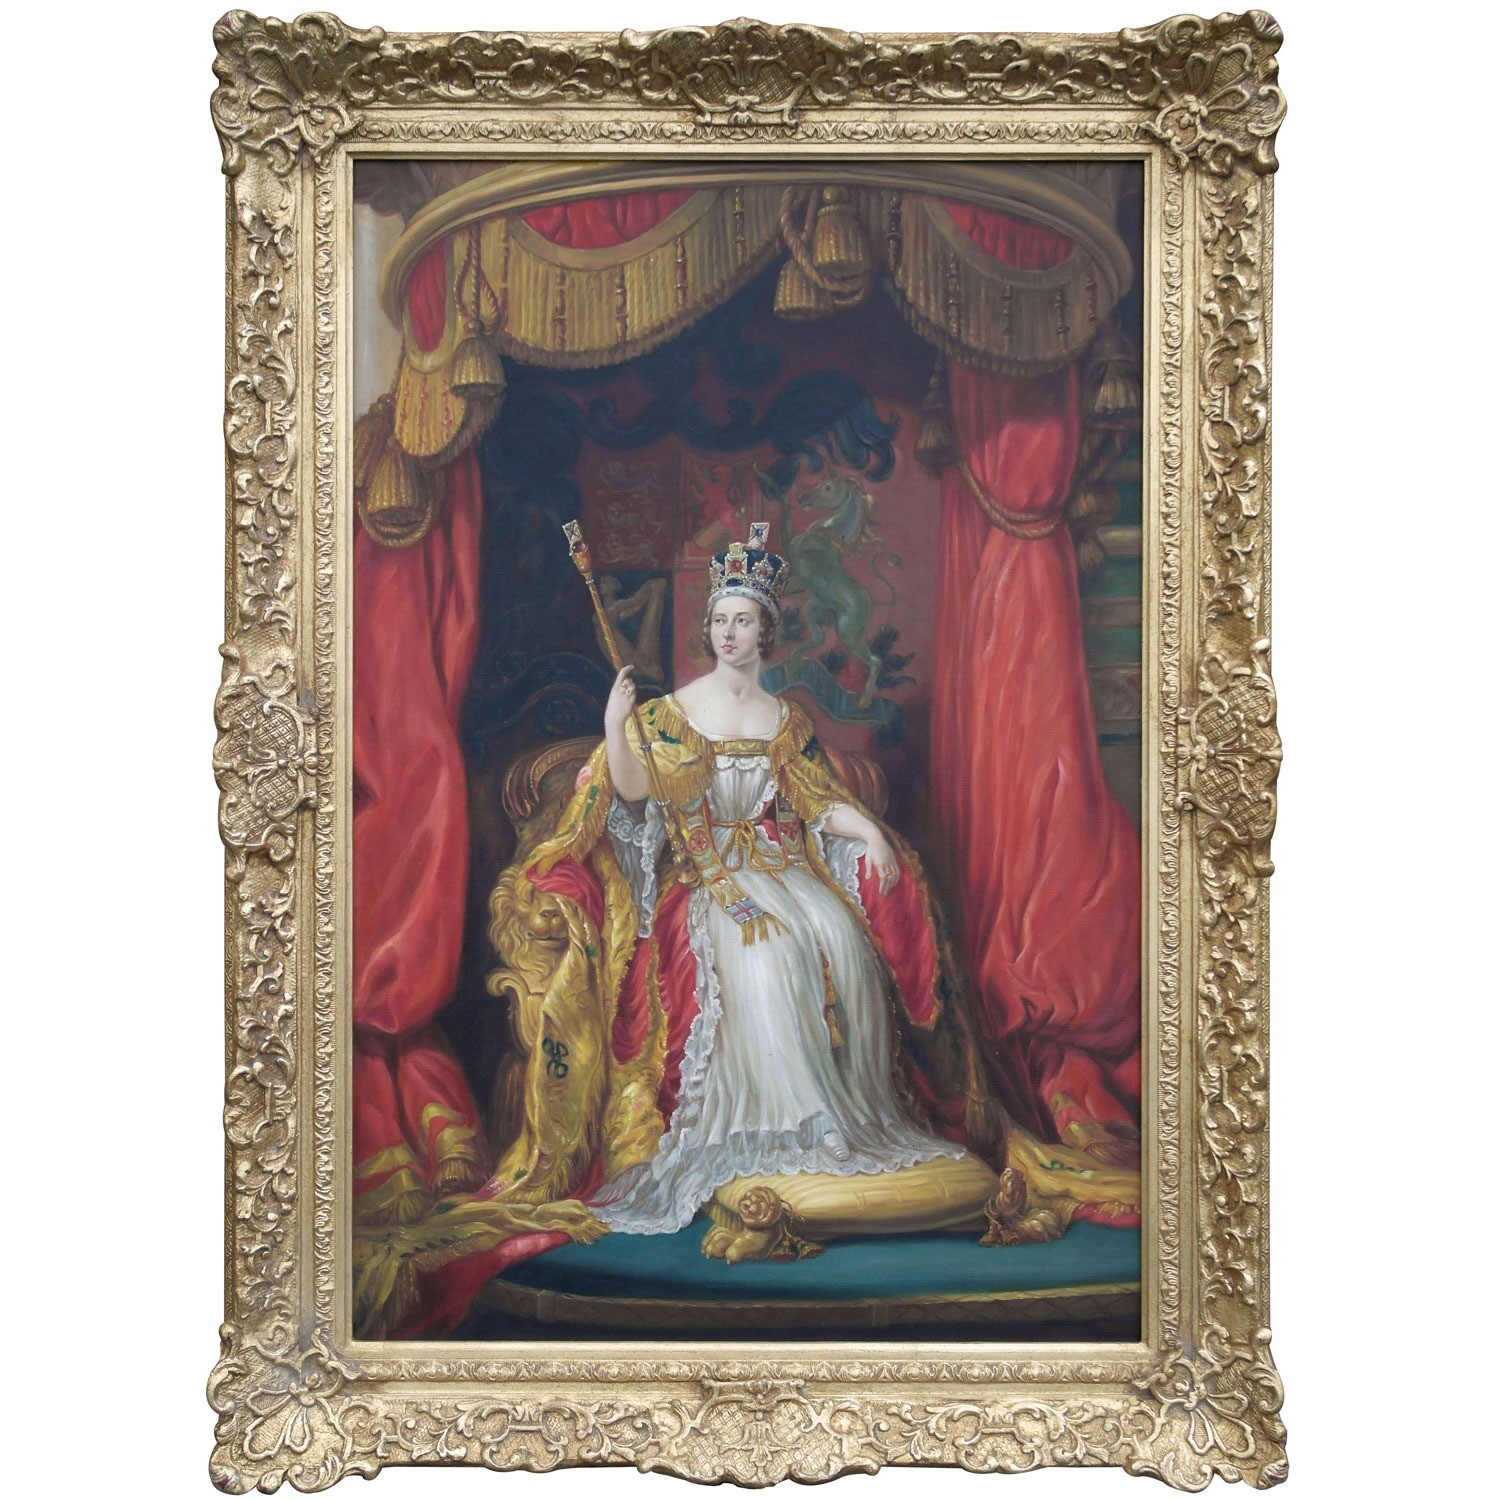 Queen Victoria after Sir George Hayter